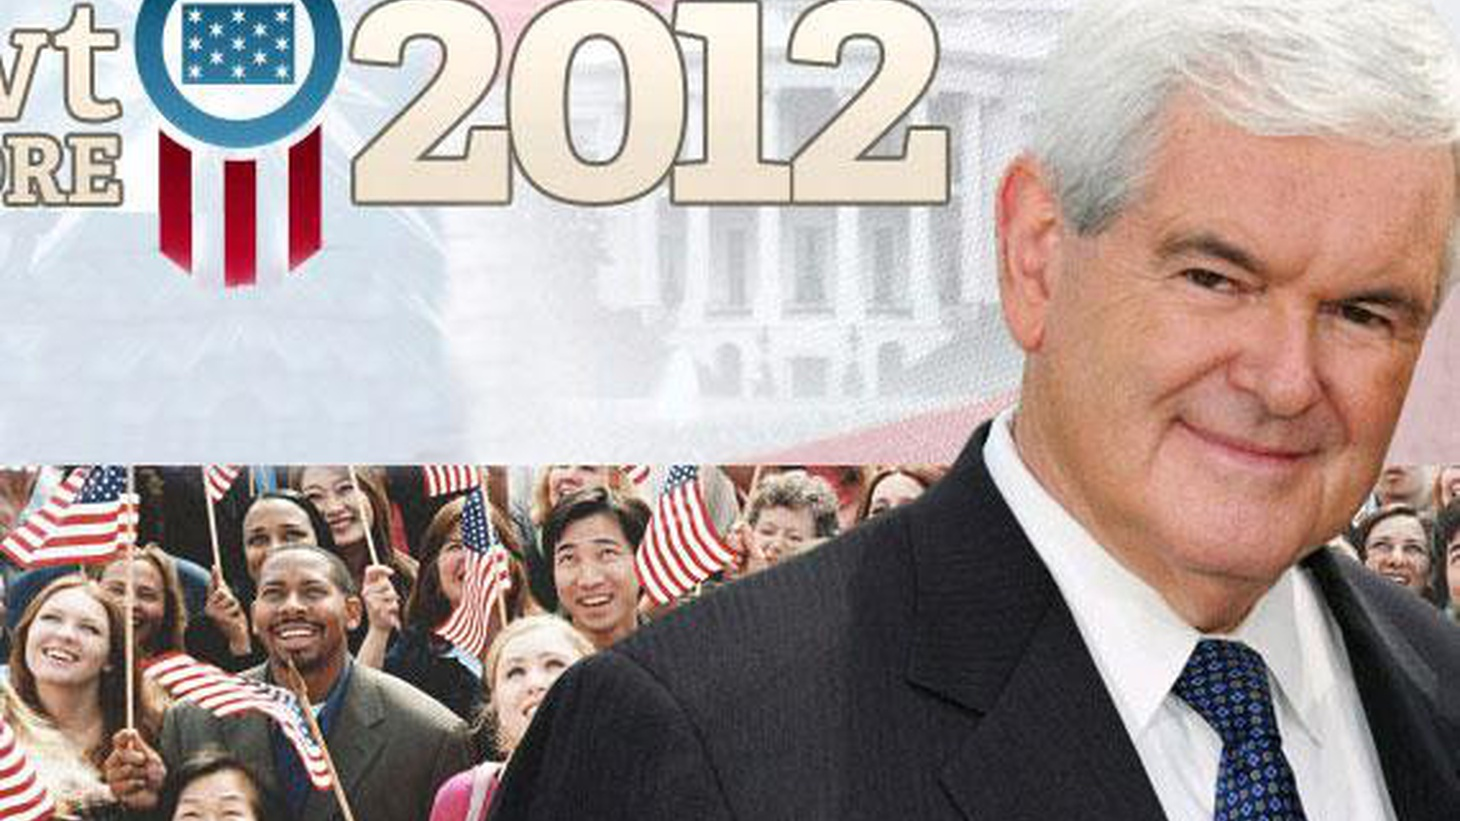 A crowd of prominent Republicans is supposedly thirsting to run against President Obama next year, but they've waited a long time to make that final commitment. Now, Newt Gingrich says he'll take the plunge...